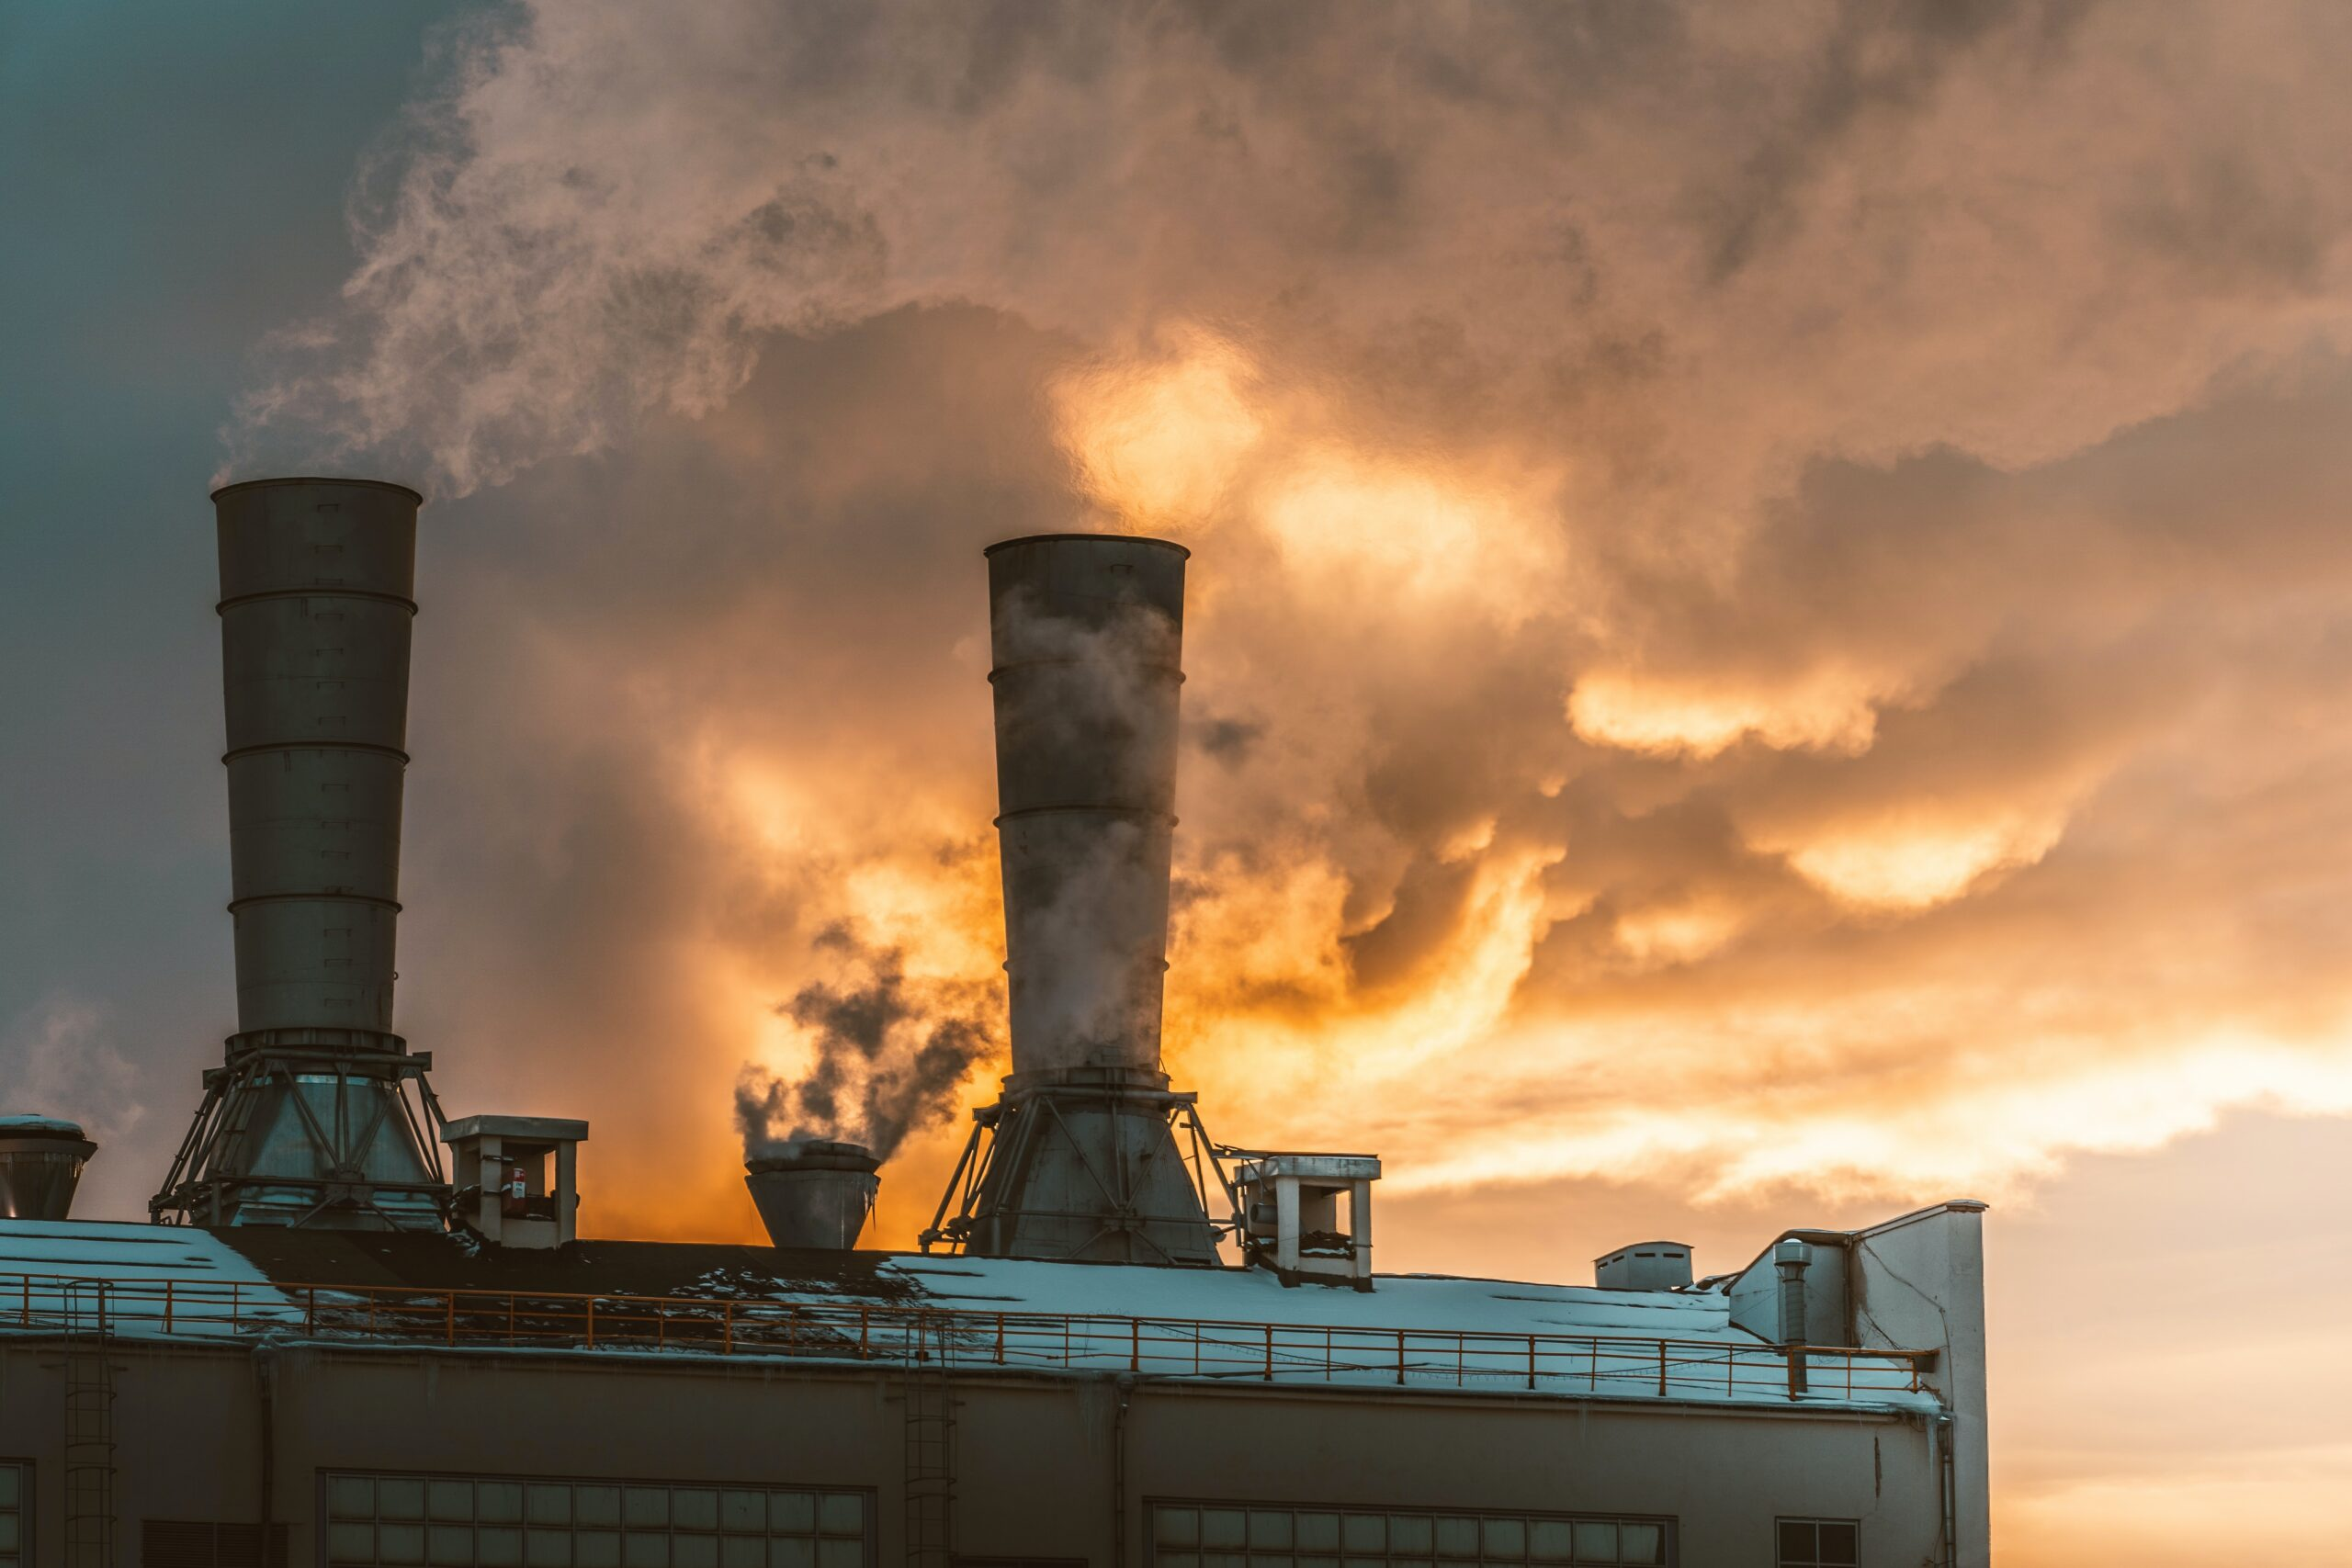 Carbon emissions may cost $2.5 Trillion each year